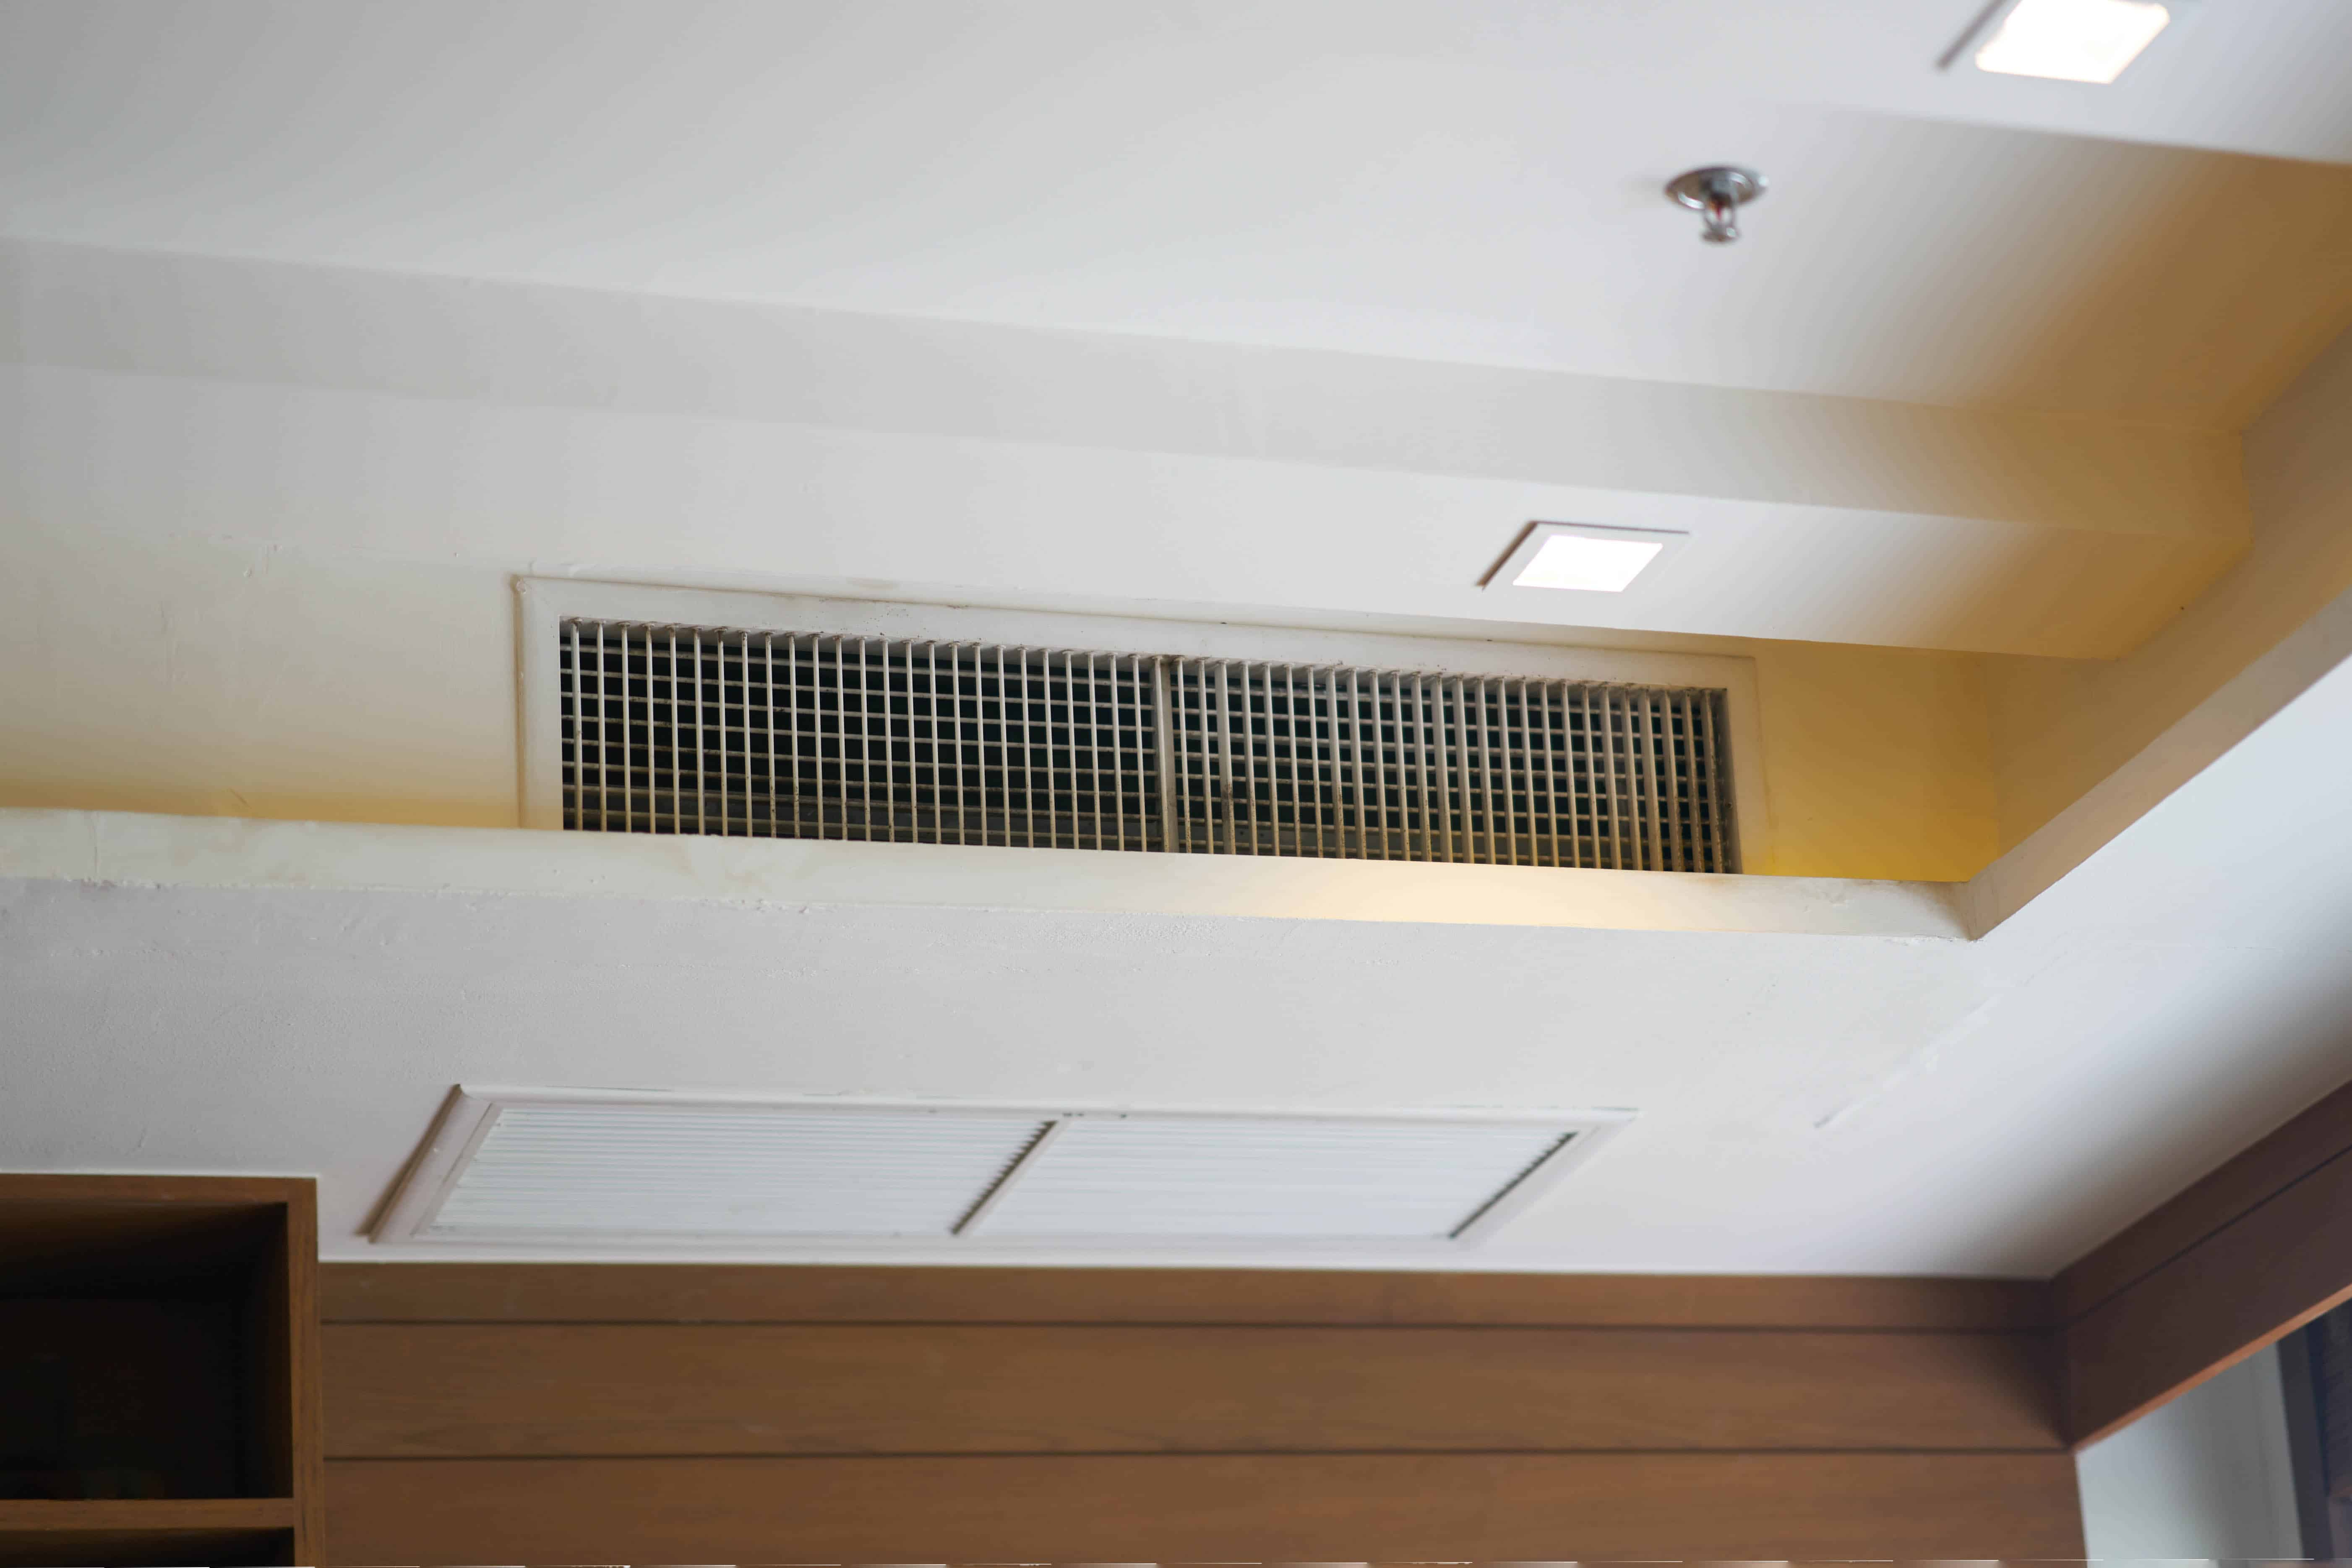 Airconditioning vent